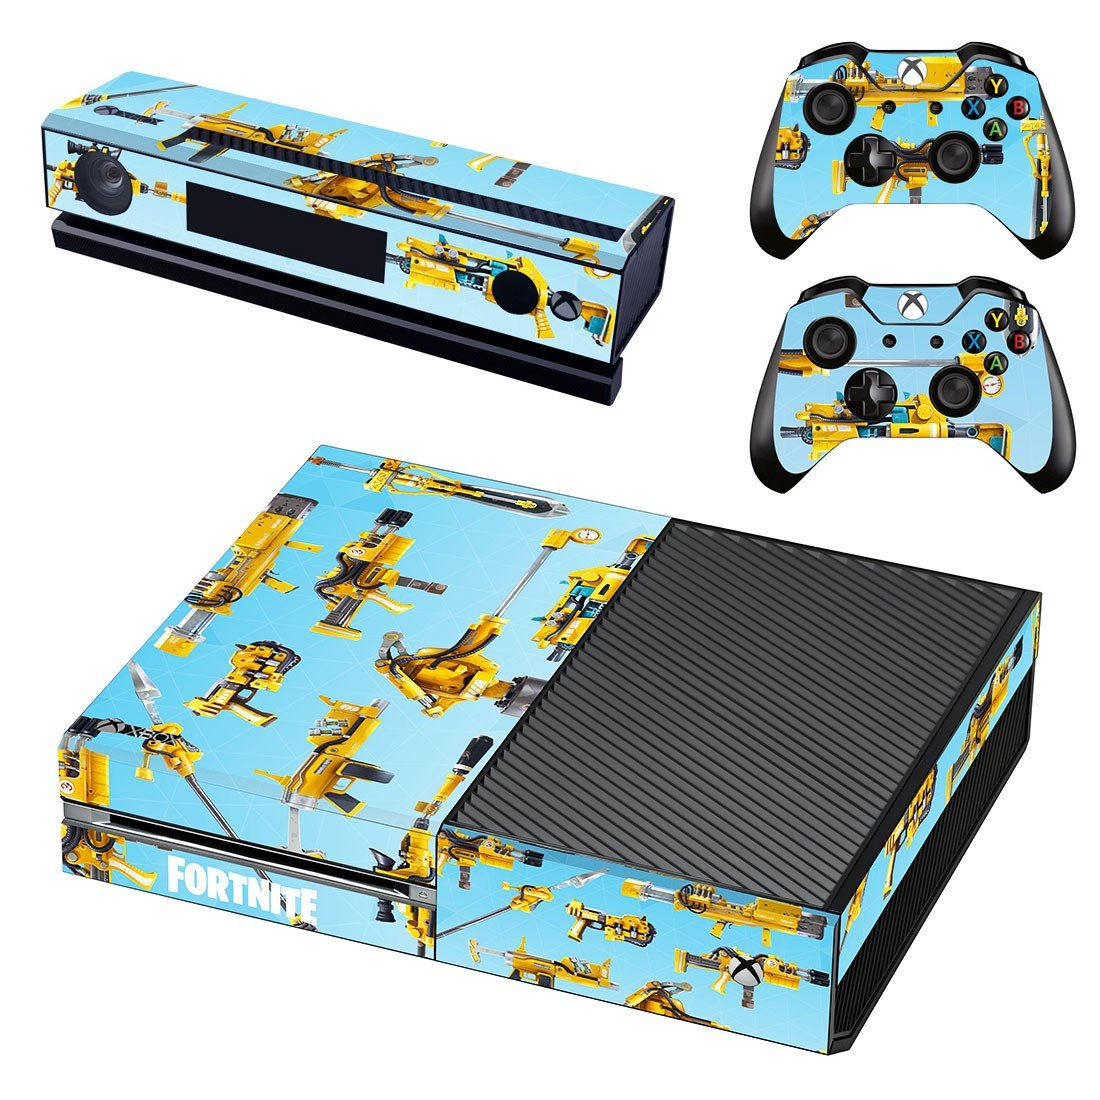 Fortnite Guns decal skin sticker for Xbox One console and controllers